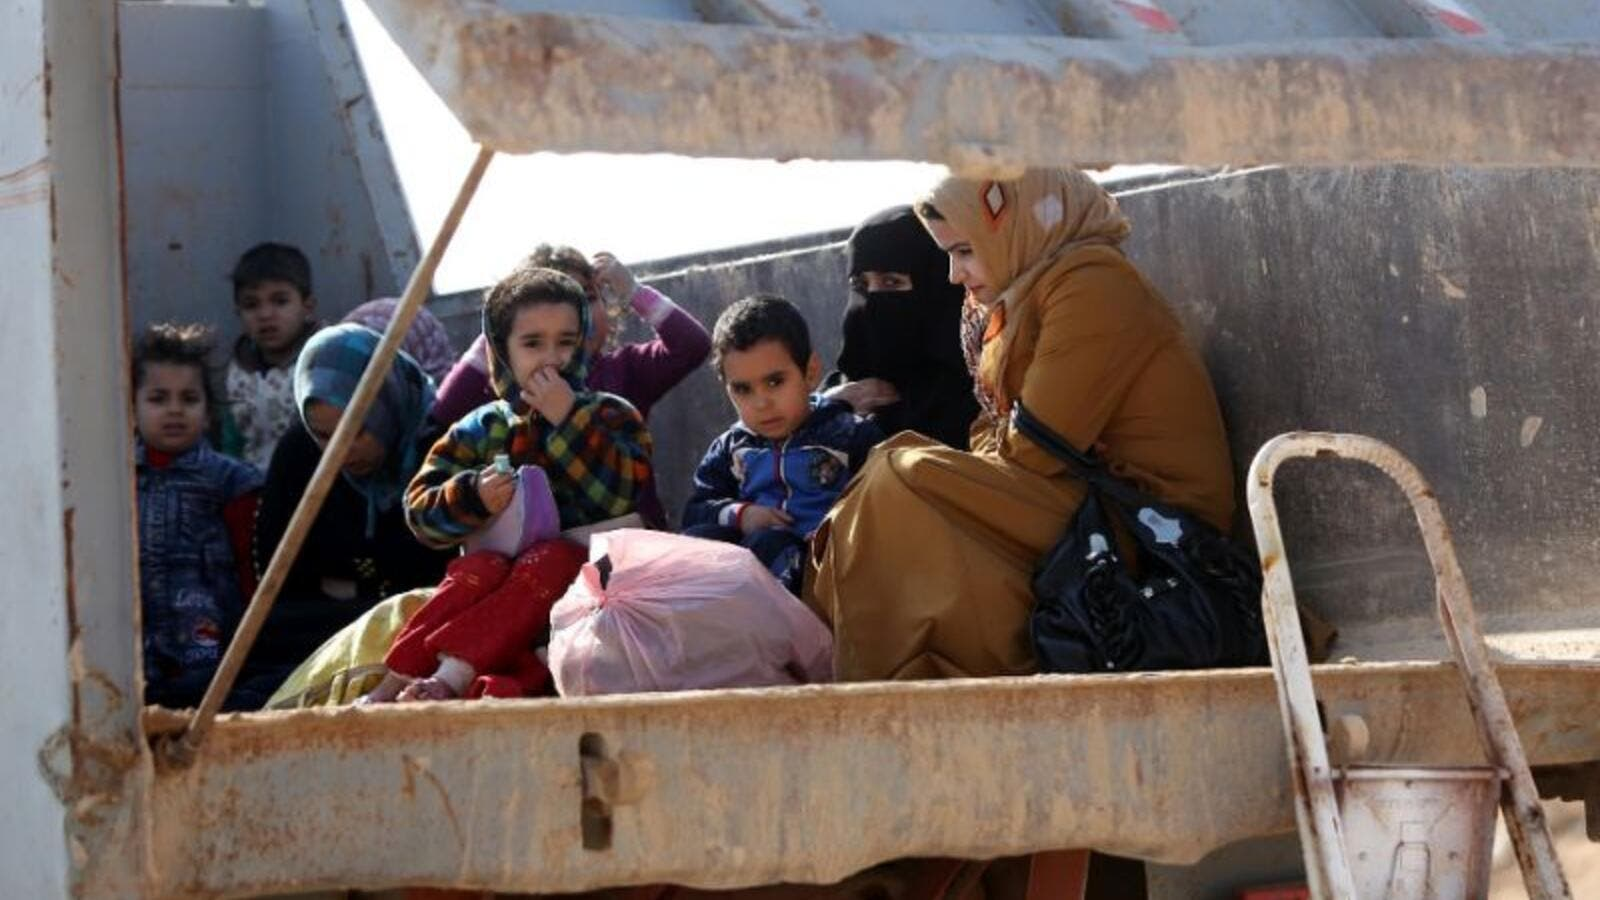 Iraqi women and children sit in the back of a truck at an army checkpoint at Ayn al-Tamer crossing at the entrance to Karbala province on January 6, 2014. (AFP/Ahmad al-Rubaye)